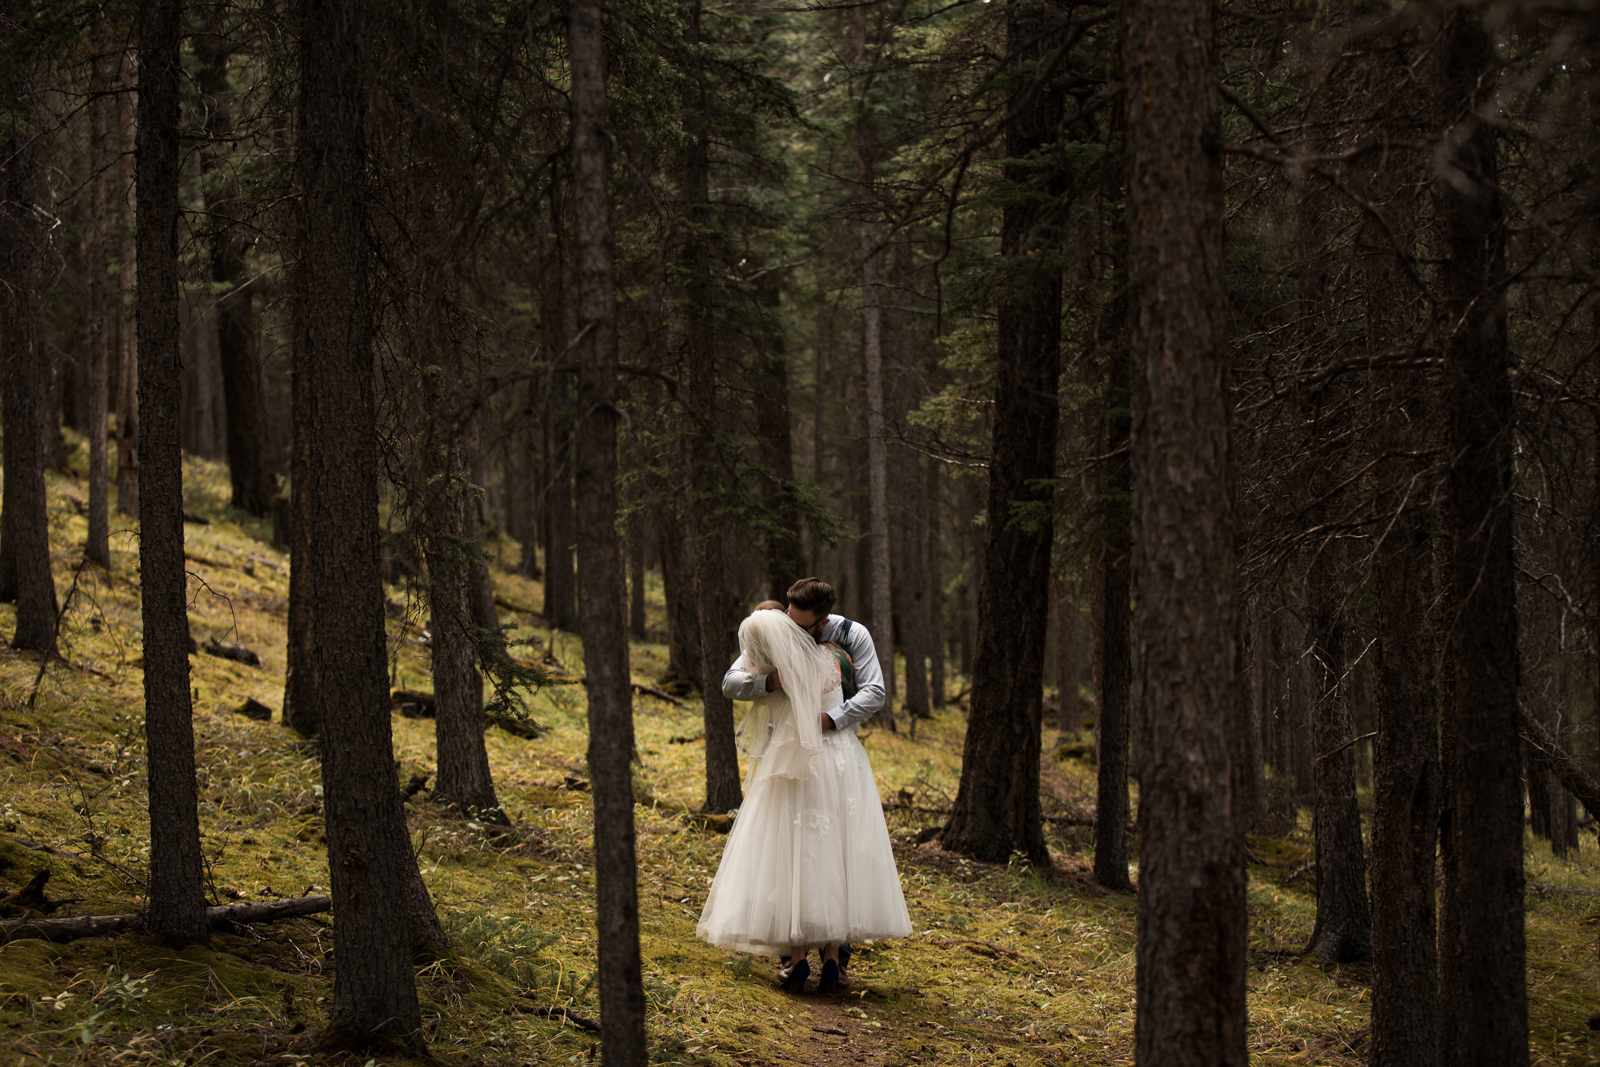 28-willow_and_wolf_photography_stephanie_and_kyle_banff_wedding_blogatp_7628